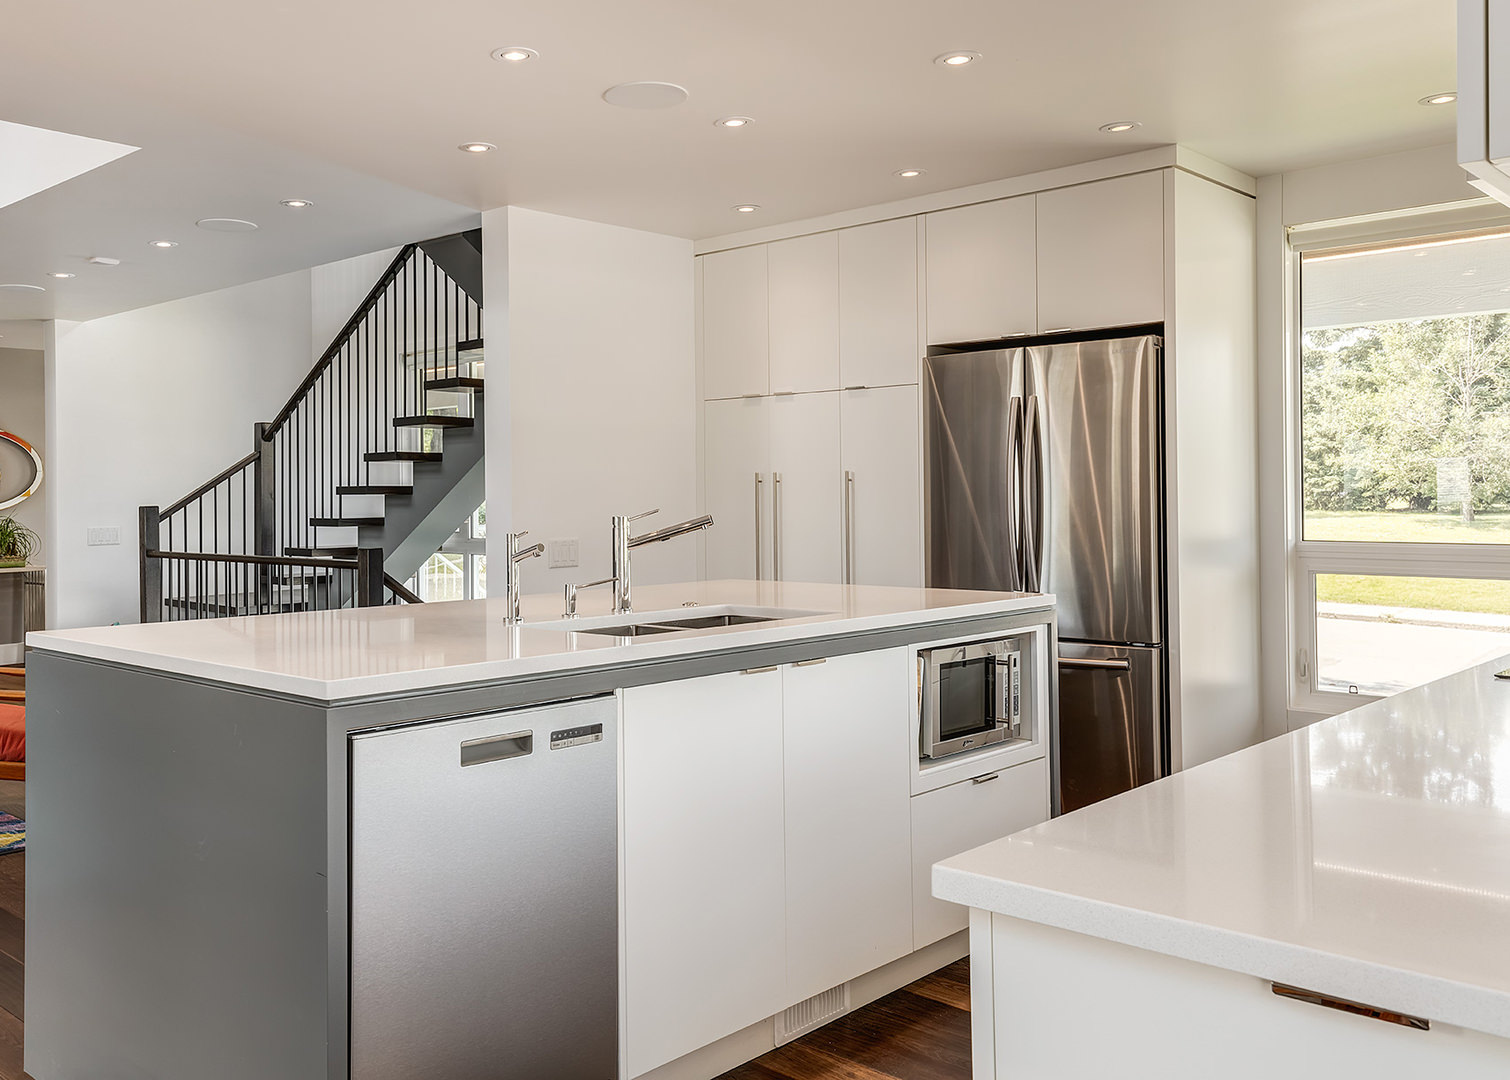 A few steel kitchen tools and equipment is incorporated in this kitchen giving it a shimmering touch and contrast in its pure white tone design.